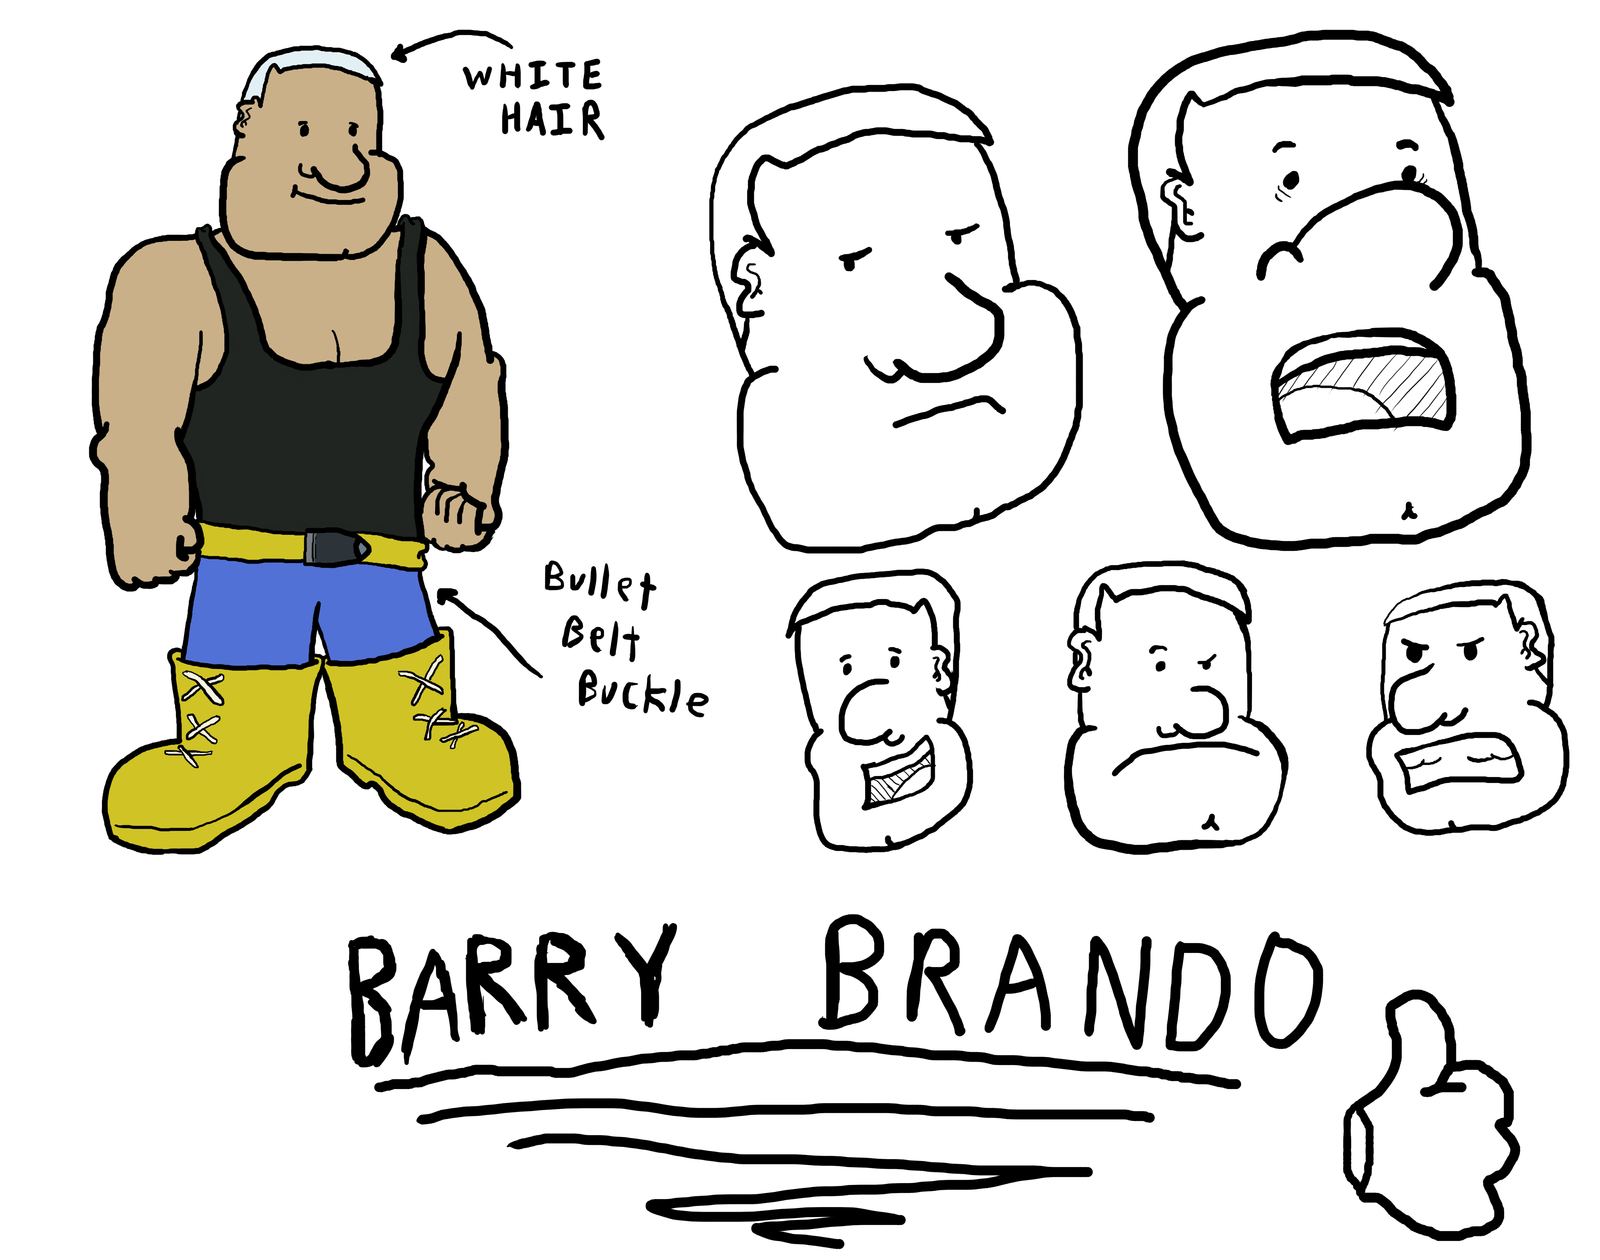 Barry Brando, the Ex-Marine - Character Sheet by Vigorousjammer